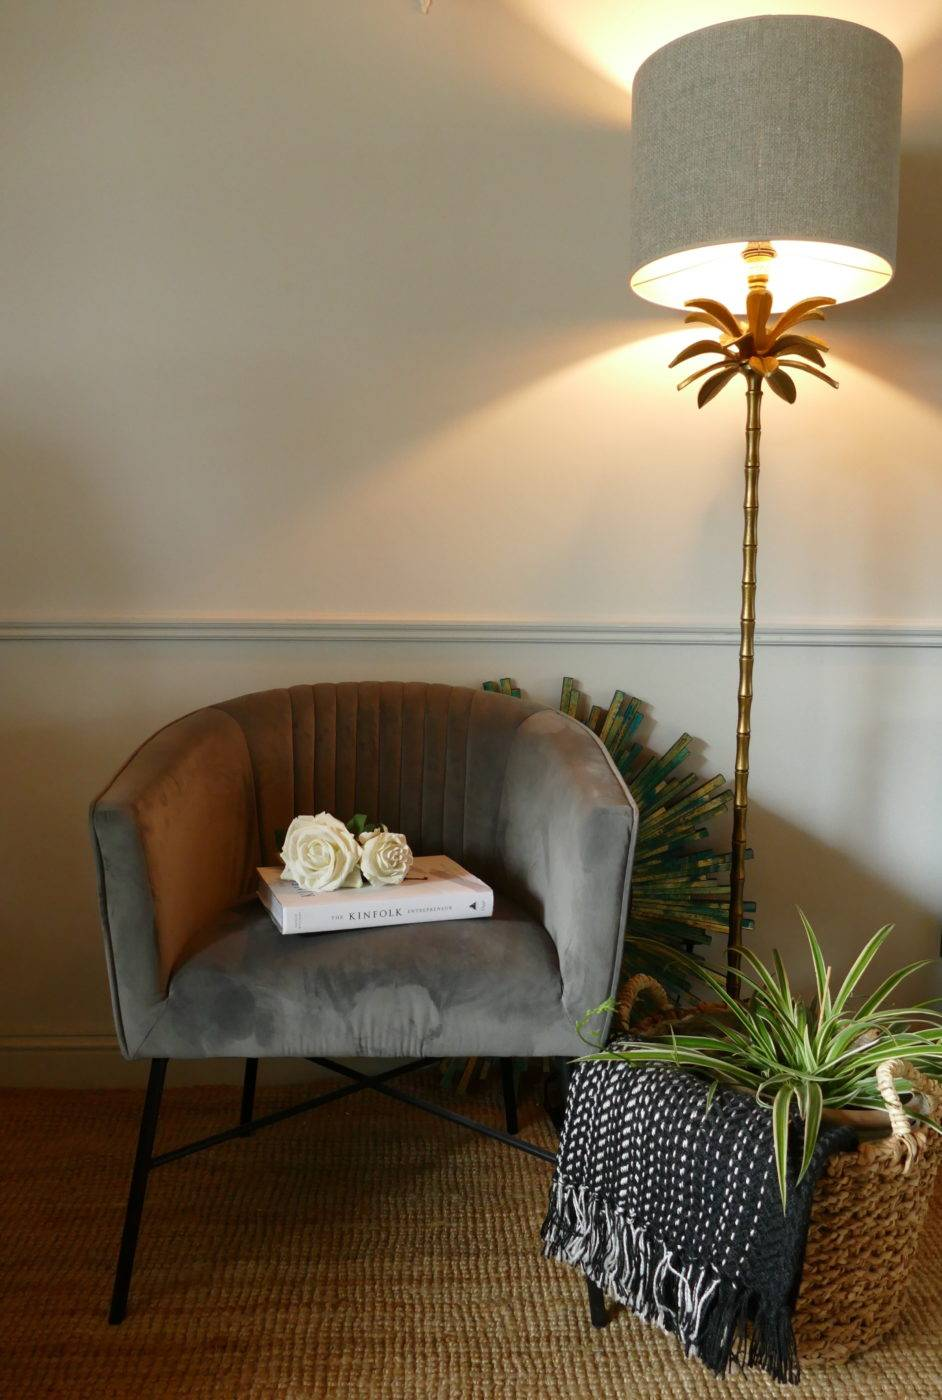 velvet club grey chair in sitting room with lamp from stagers lifestyle shop